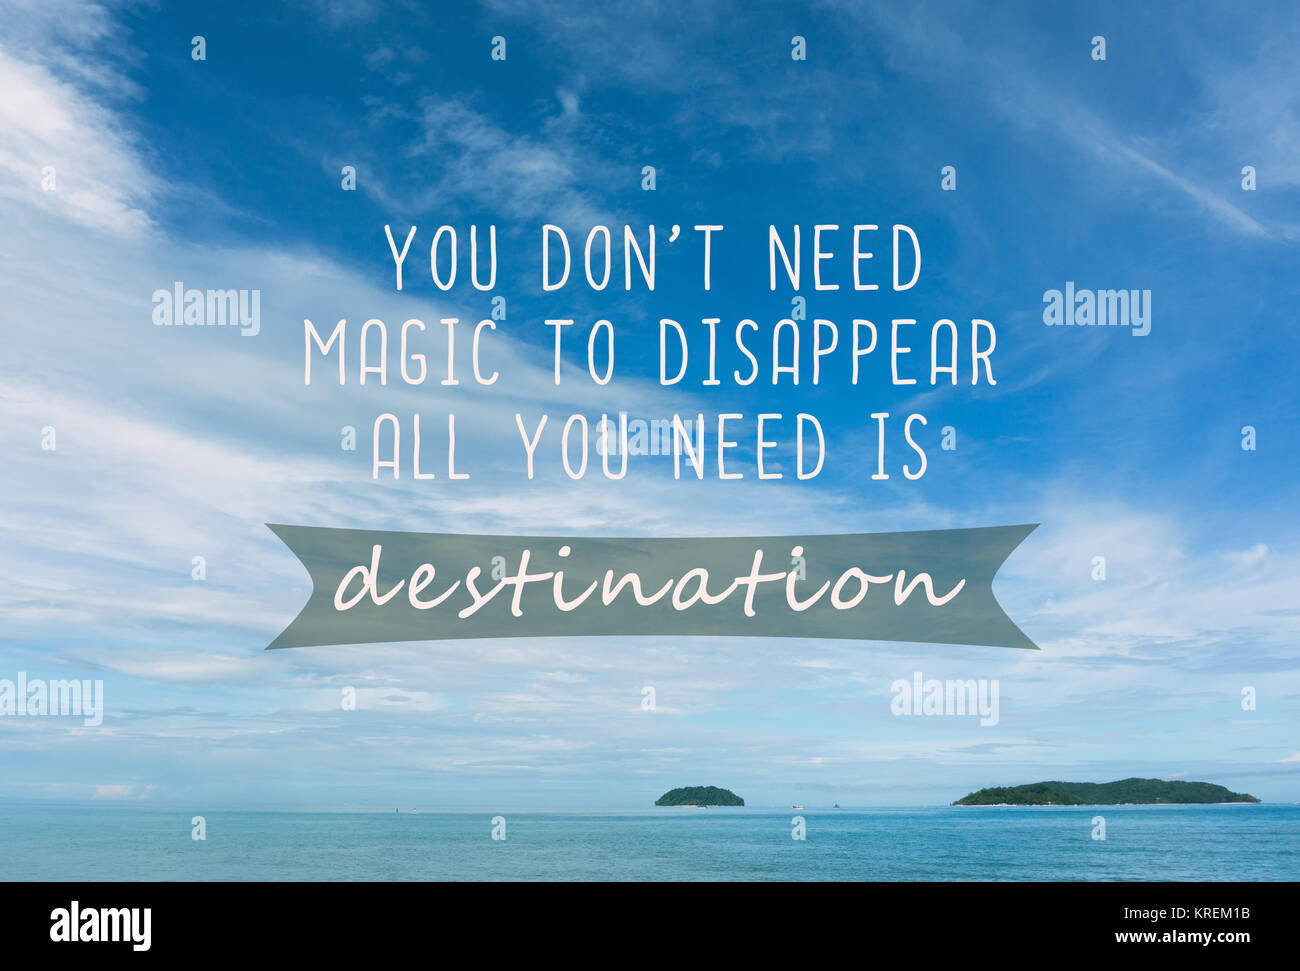 Travel Inspirational Quotes You Dont Need Magic To Disappear All